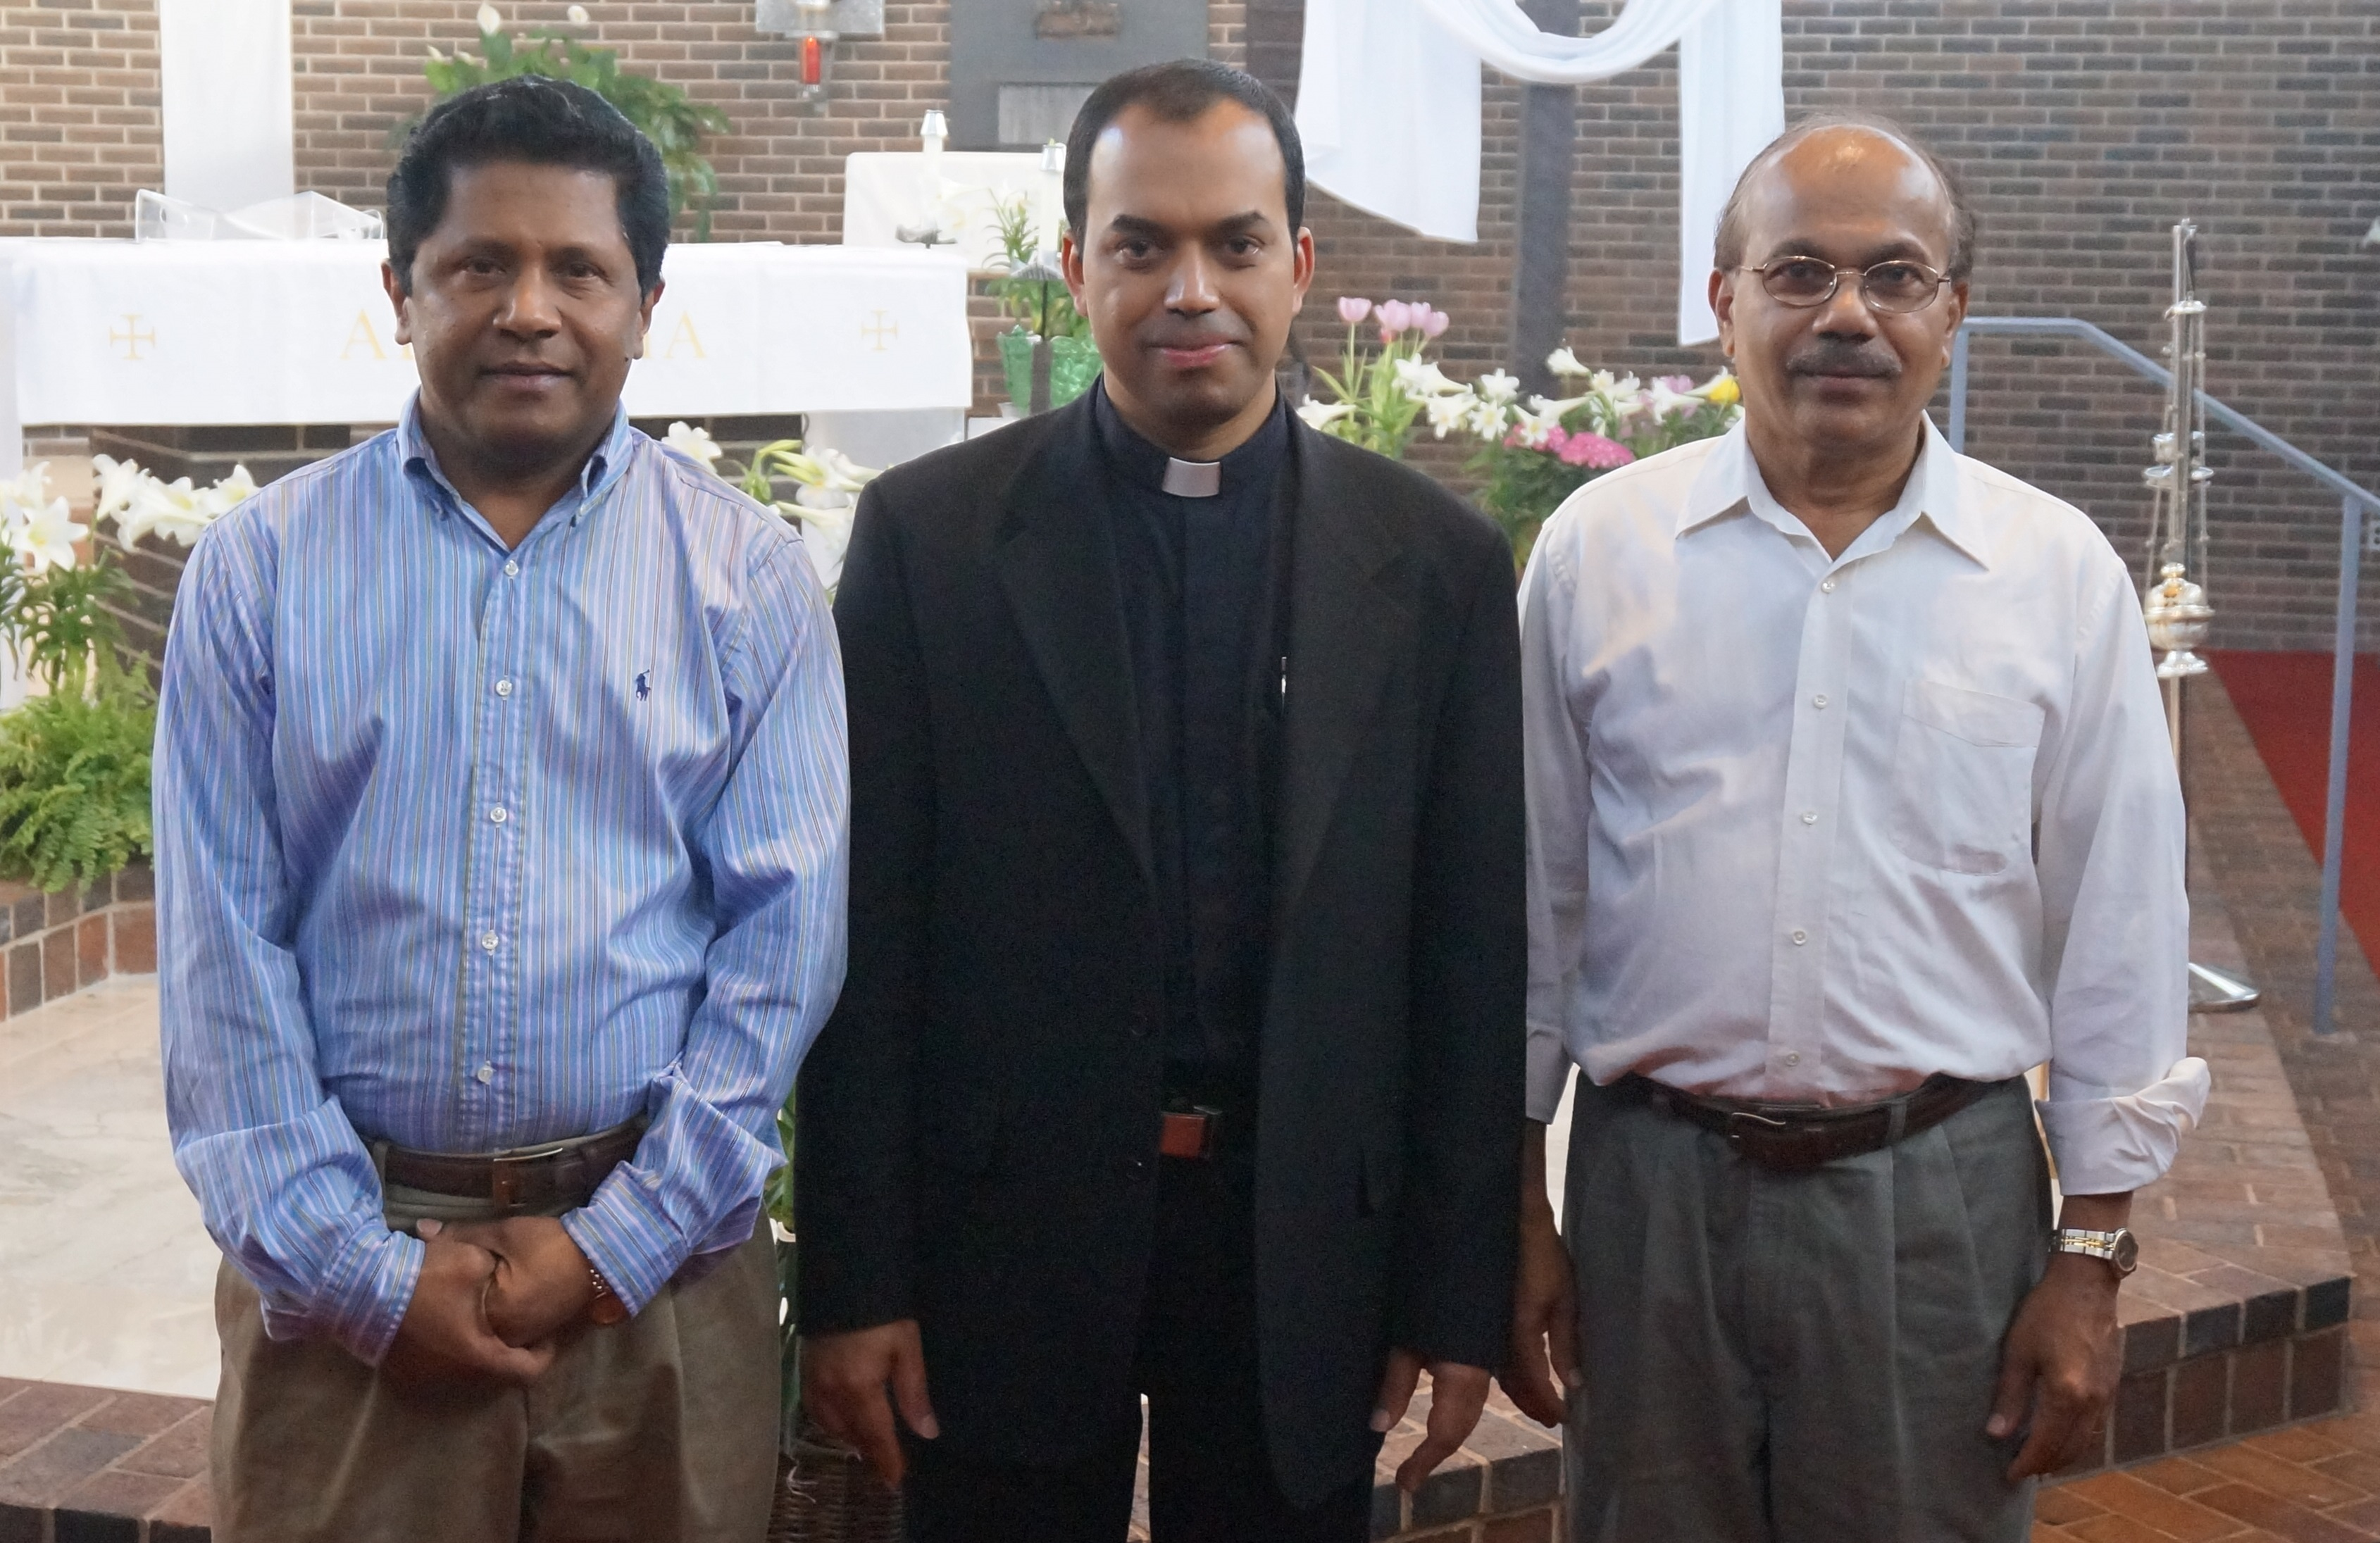 Trustees 2012-2014 Mr. Thomas Chennadu and Mr. Thomas Mathew with Fr. Joseph Pullikattil